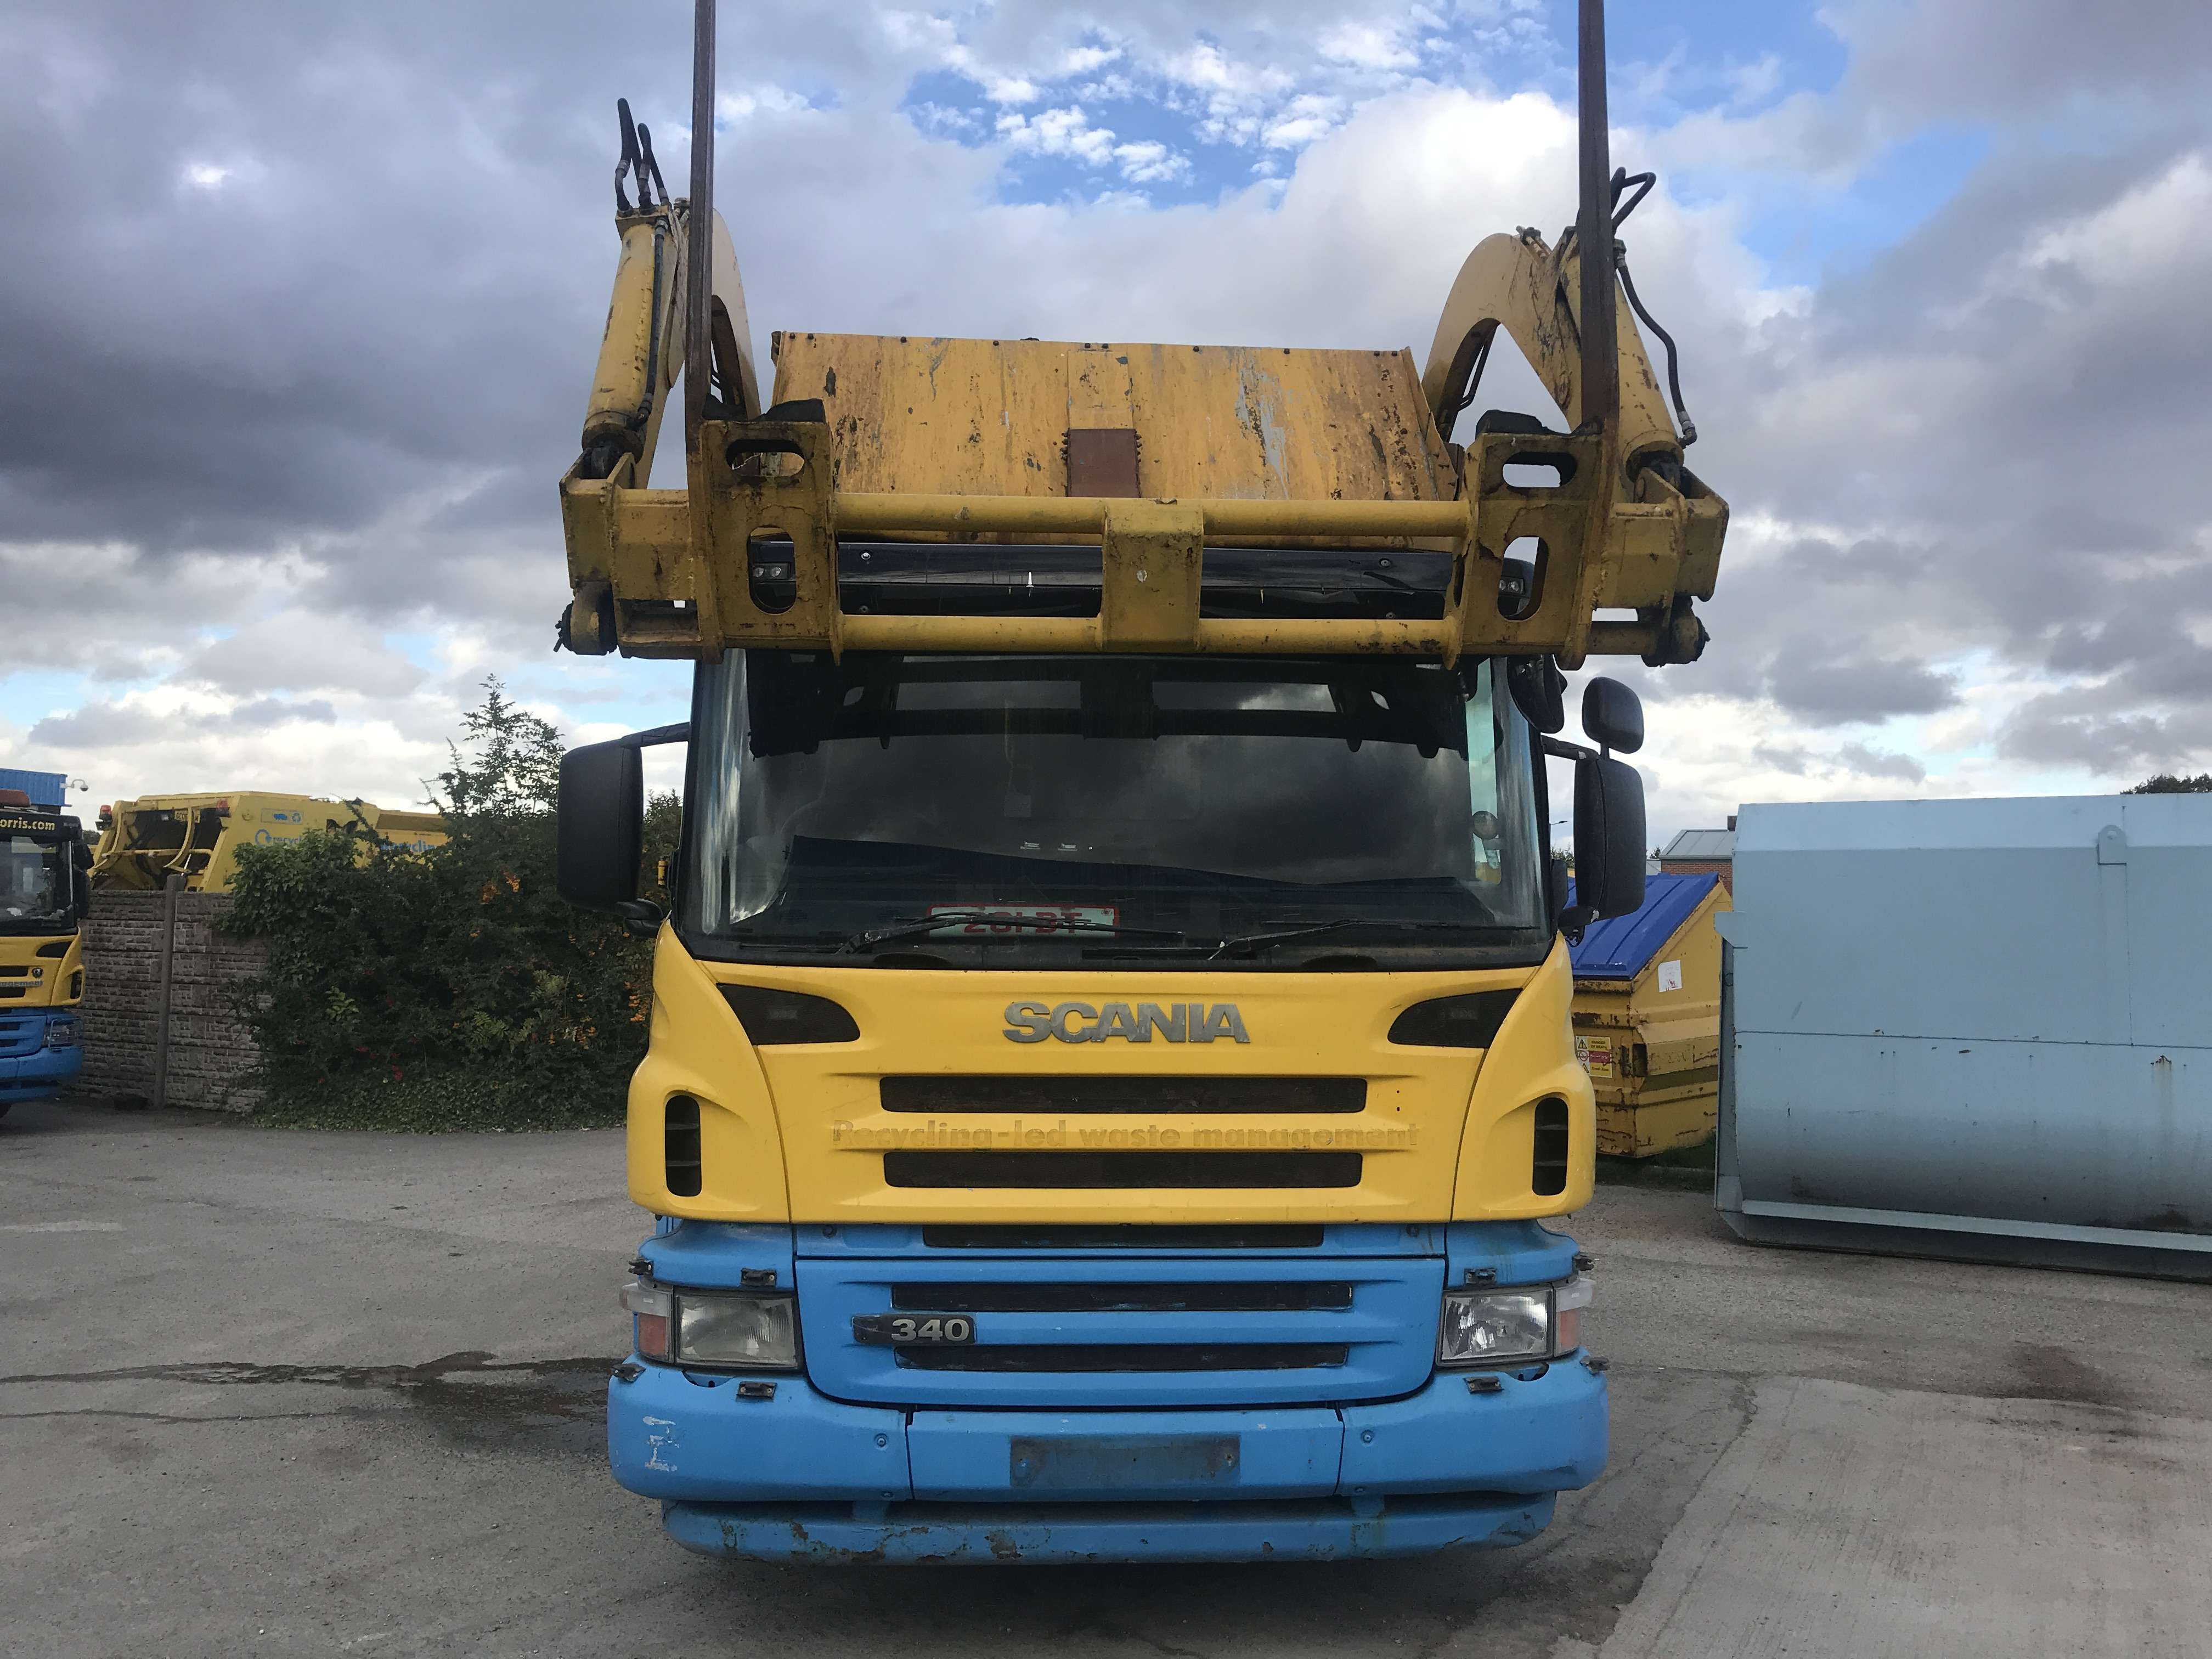 2007 Scania P340 8x4 front end loader for sale 2